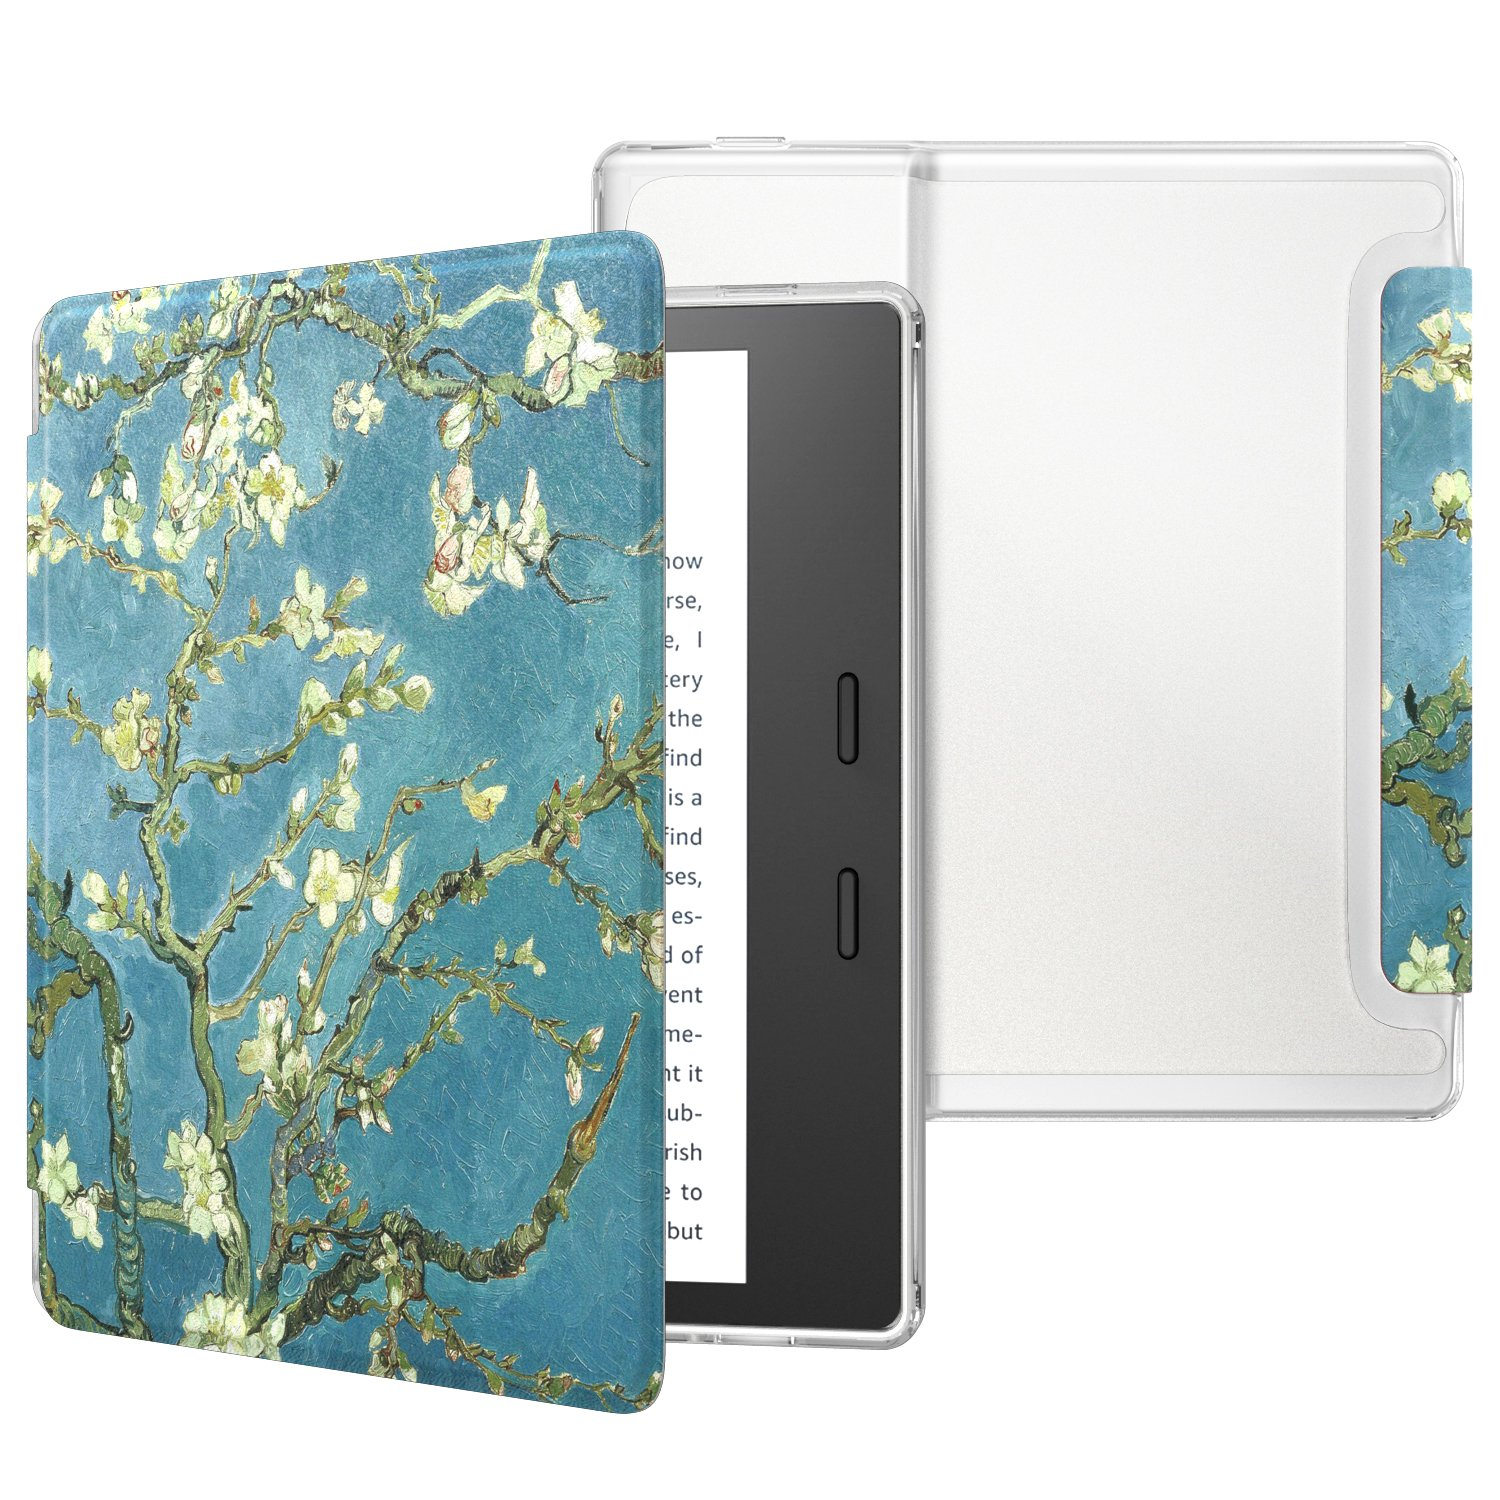 MoKo Case Fits All-New Kindle Oasis (9th and 10th Generation ONLY, 2017 and 2019 Release), Slim Lightweight Cover with Translucent Frosted Back Protector - Almond Blossom